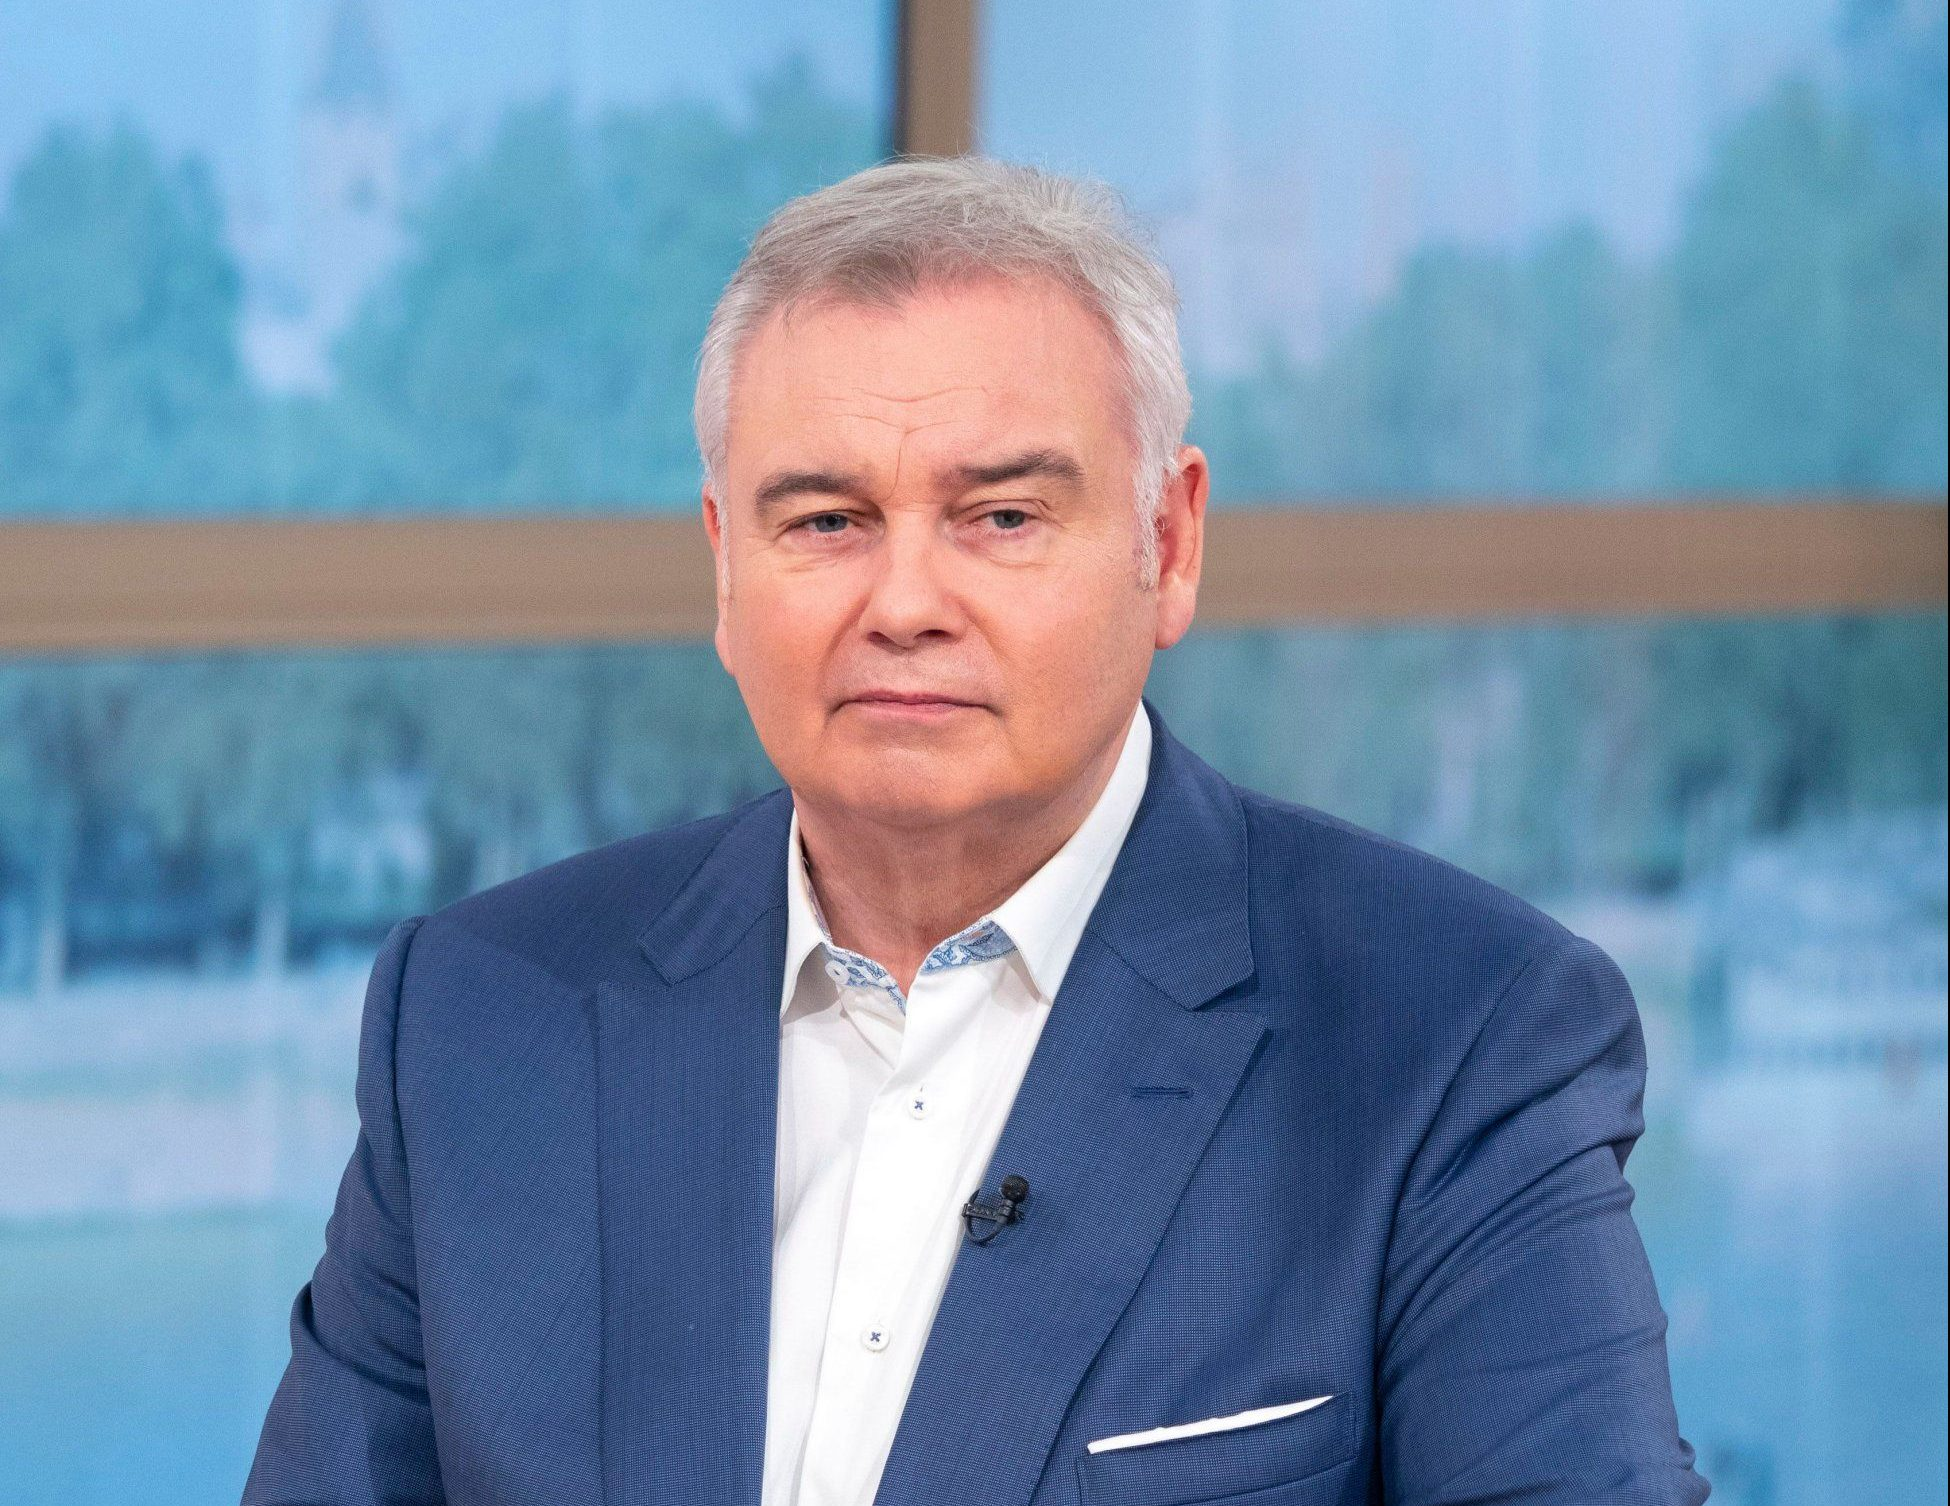 EDITORIAL USE ONLY. NO MERCHANDISING Mandatory Credit: Photo by Ken McKay/ITV/REX/Shutterstock (9707672d) Eamonn Holmes 'This Morning' TV show, London, UK - 08 Jun 2018 OPENING CHAT - AS LOUIS QUITS THE X FACTOR, WHO SHOULD REPLACE HIM ON THE PANEL? After 13 years on the X Factor, Louis Walsh has quit his judging post, deciding to concentrate on Ireland?s Got Talent, managing music acts, writing his memoirs and seeing the world. So as the show enters its 15th series - who will join Simon Cowell and Sharon Osbourne on the panel ? We hear what our viewers think.